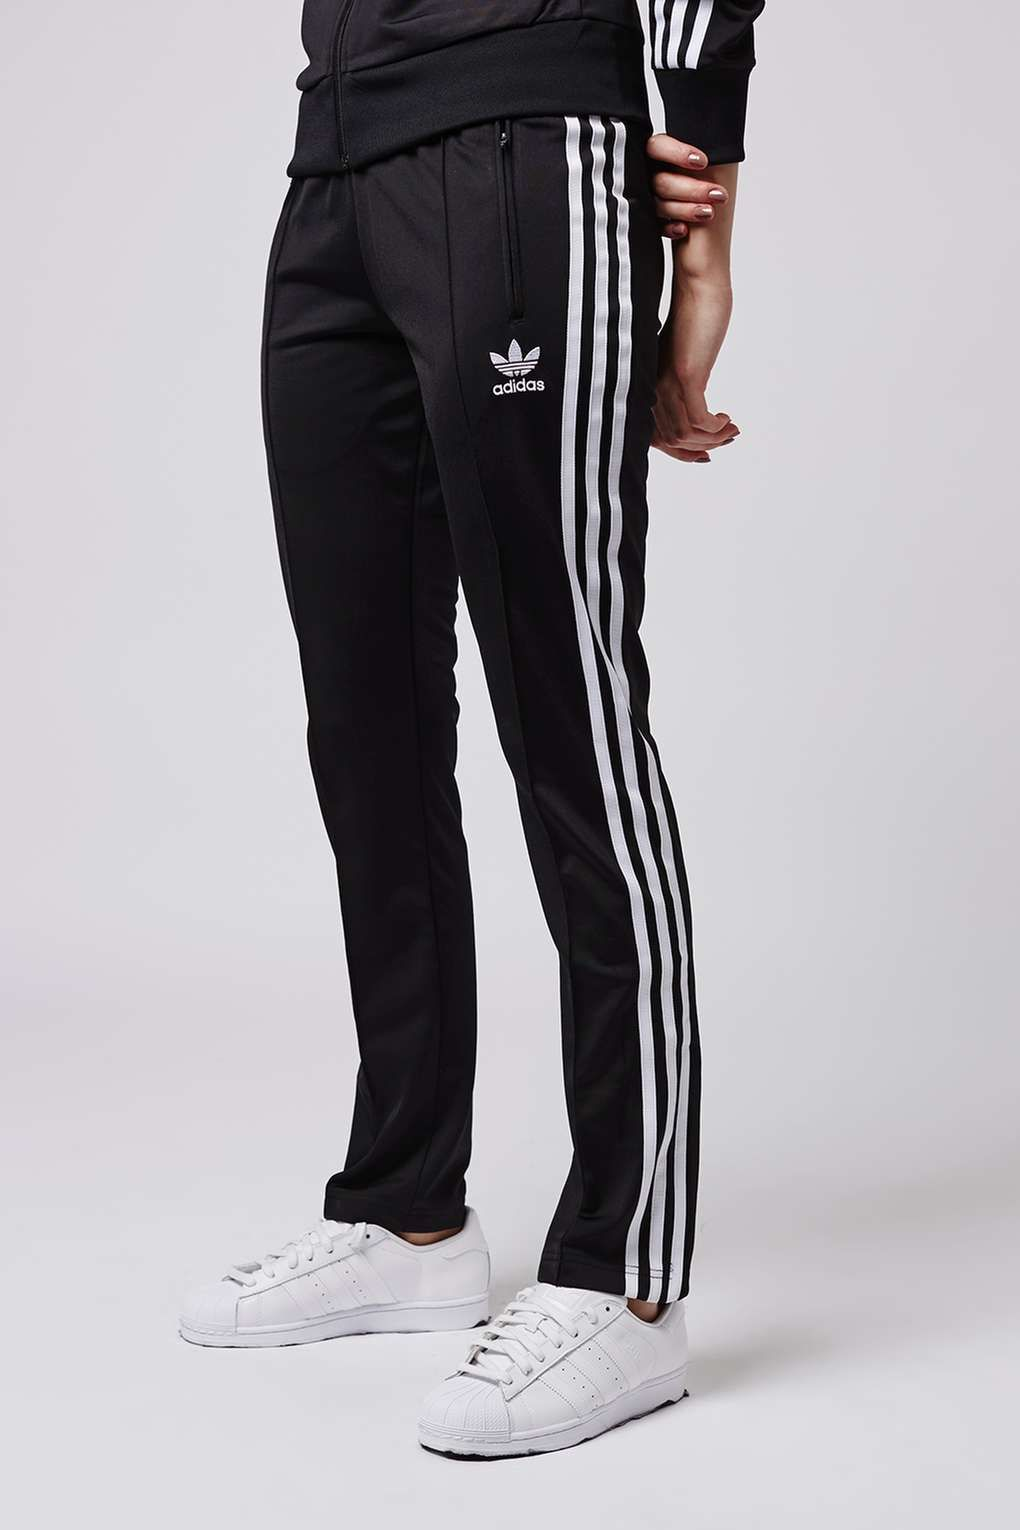 Firebird Track Pant Trousers by Adidas Originals - Brands at Topshop -  Clothing